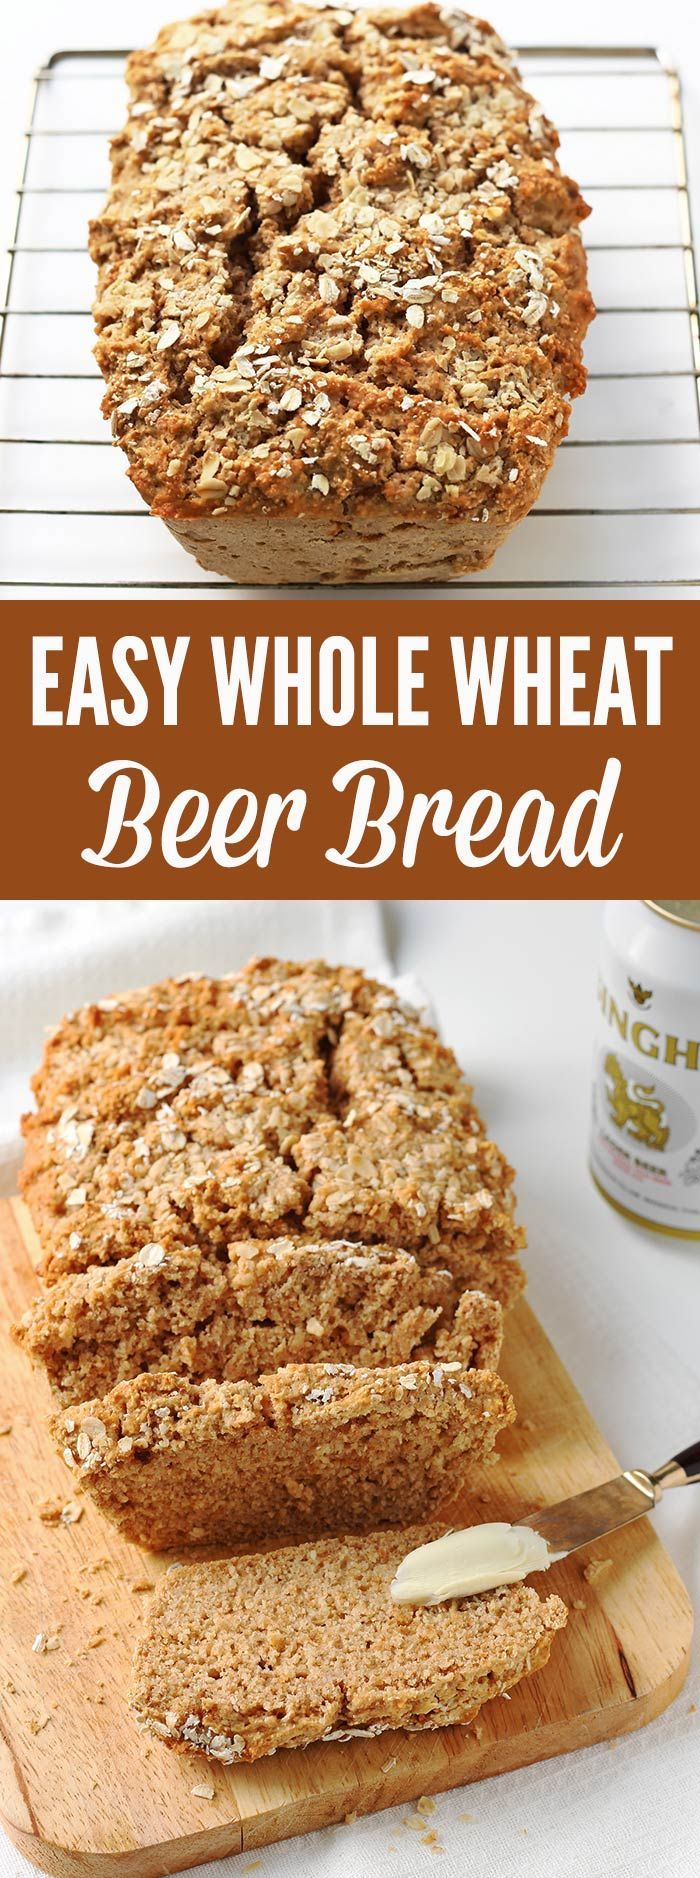 This easy whole wheat bread recipe make a wonderful loaf of crusty bread with minimal time and effort, thanks to a can of beer. NO rising and NO kneading required.